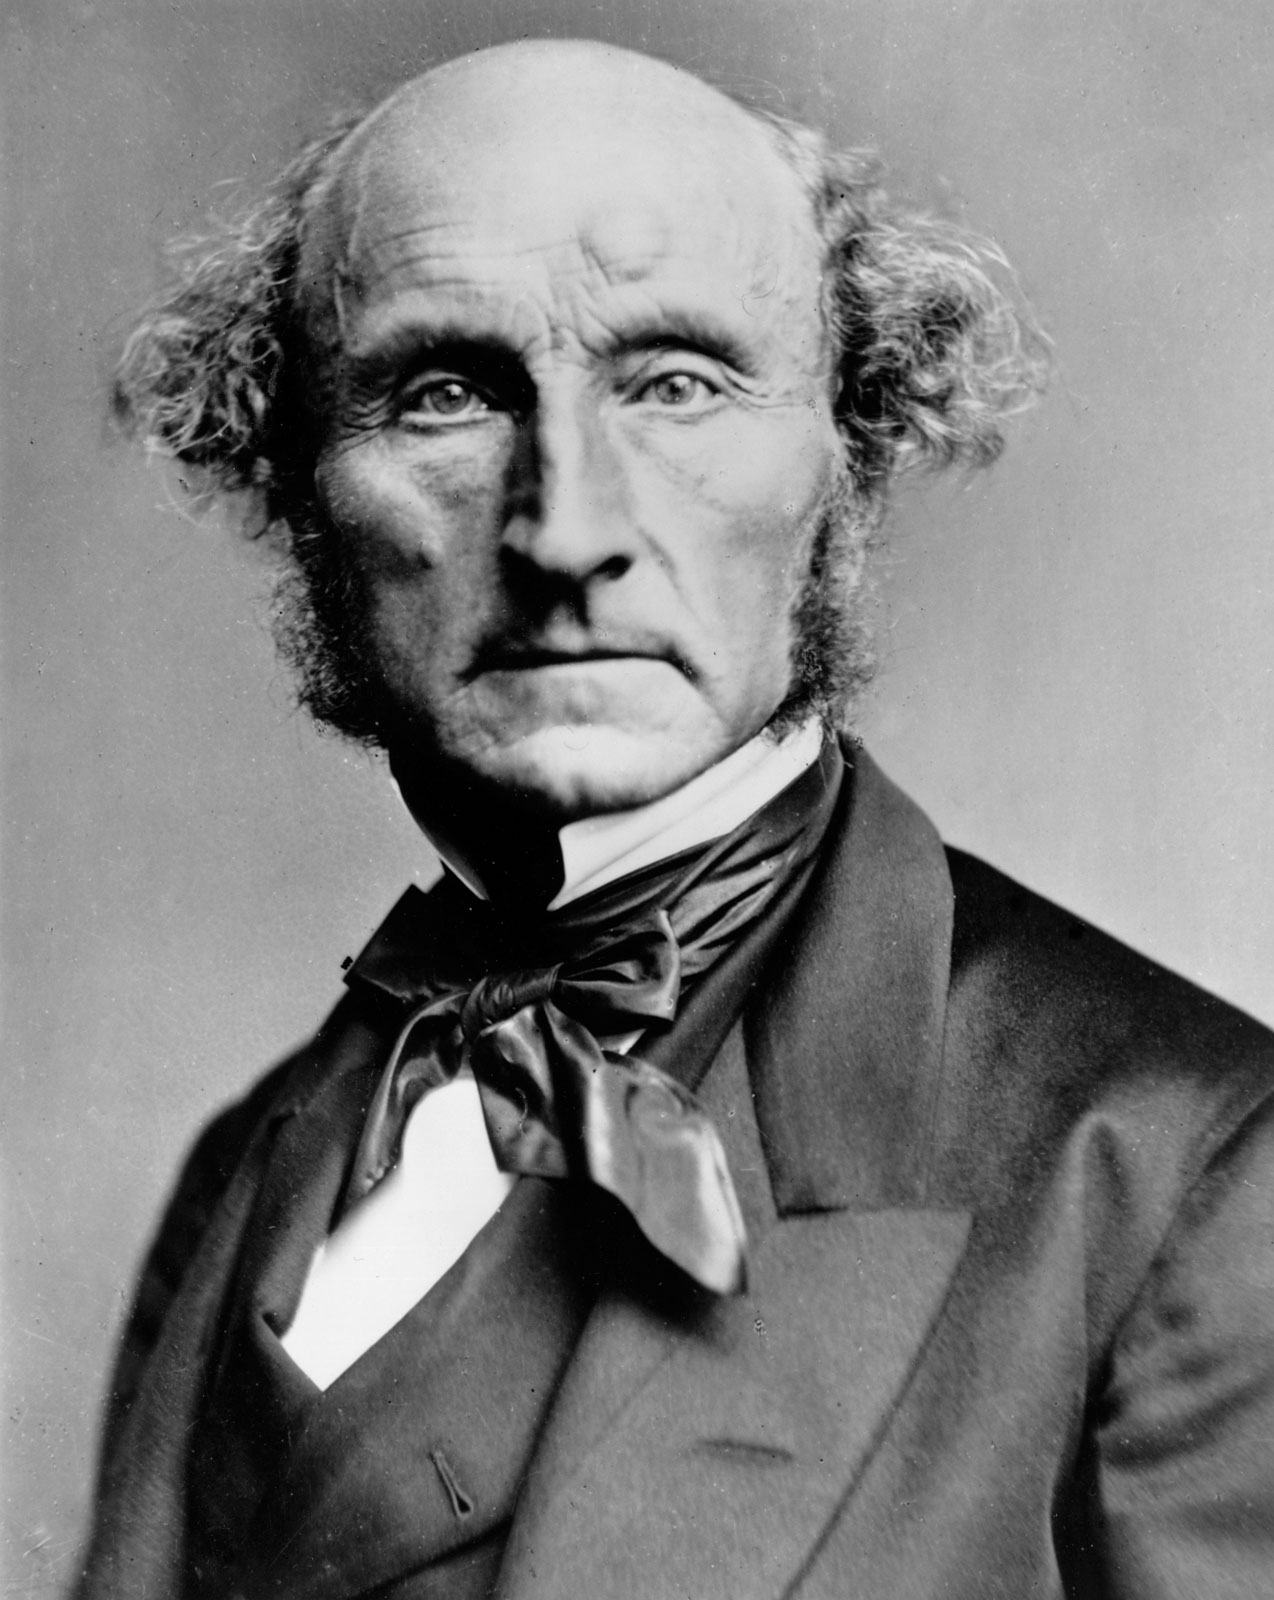 John Stuart Mill was one liberal philosopher who pondered the balance between wisdom and personal autonomy - John_Stuart_Mill_by_London_Stereoscopic_Company_c1870